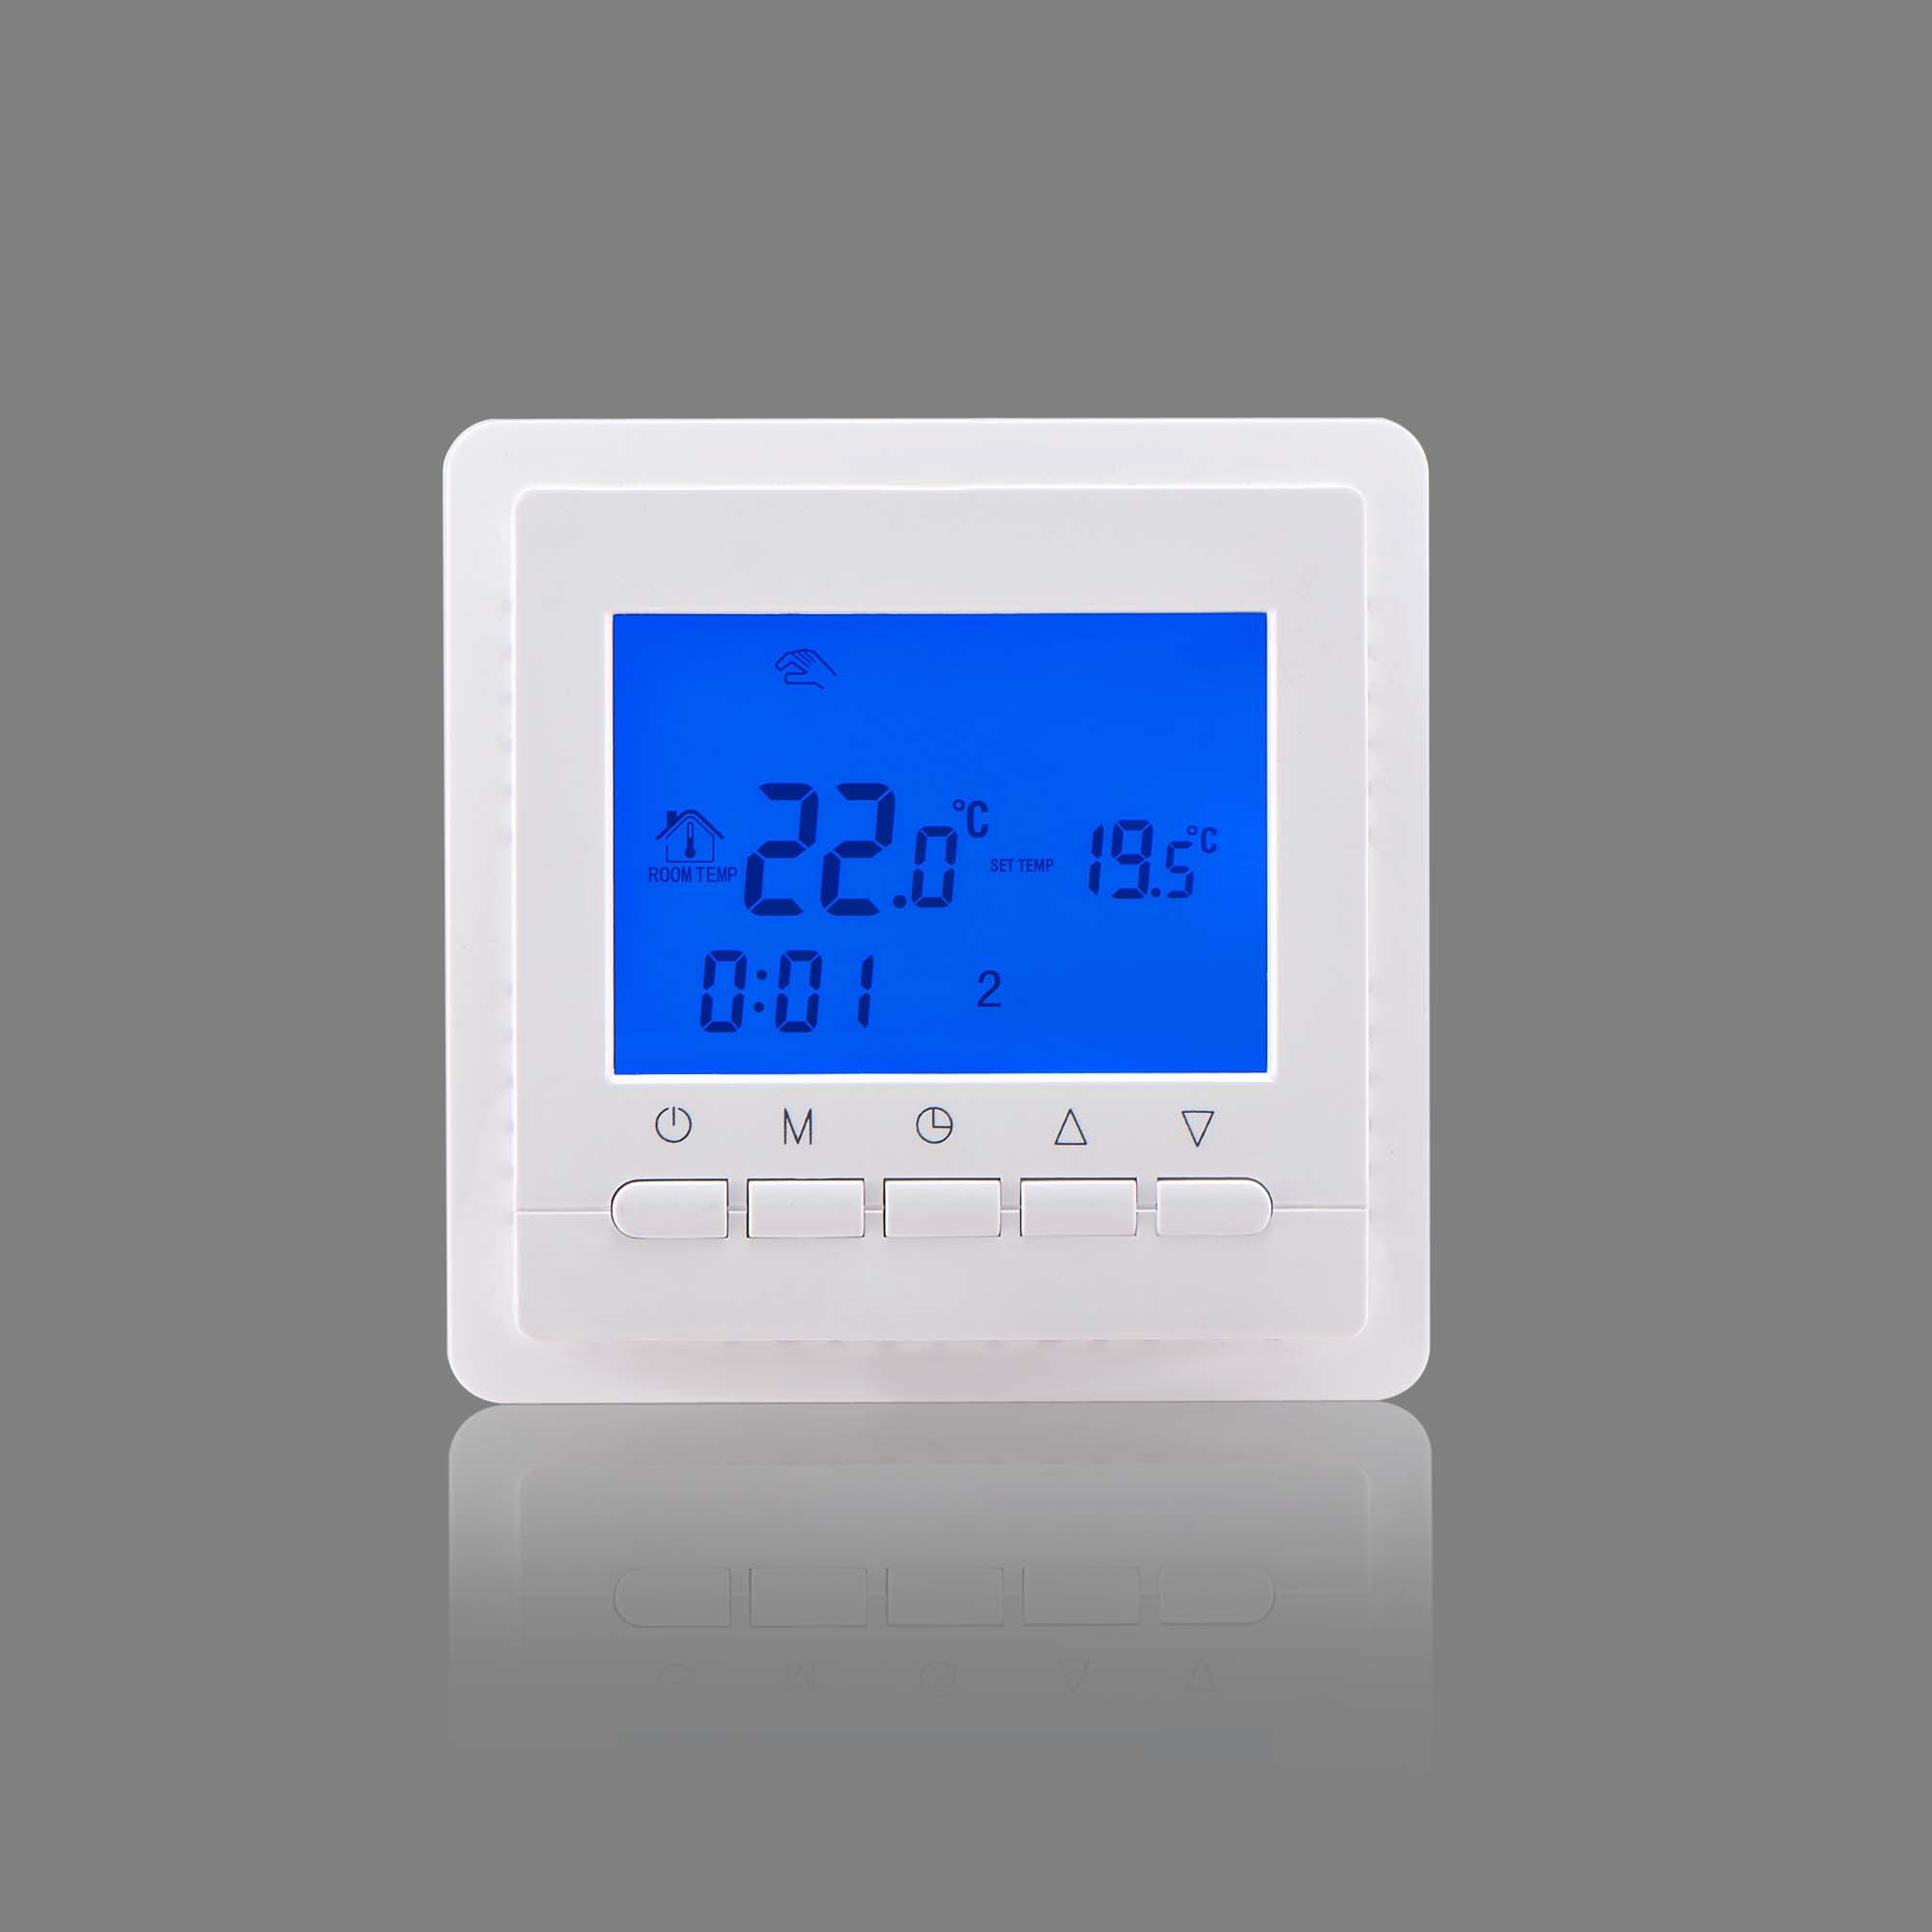 16A Warm Floor digital weekly programmable Thermostat Temperature Controller underfloor heating Thermometer  LCD Display kuyupp fashion leather women sandals bohemian diamond slippers woman flats flip flops shoes summer beach sandals size10 ydt563